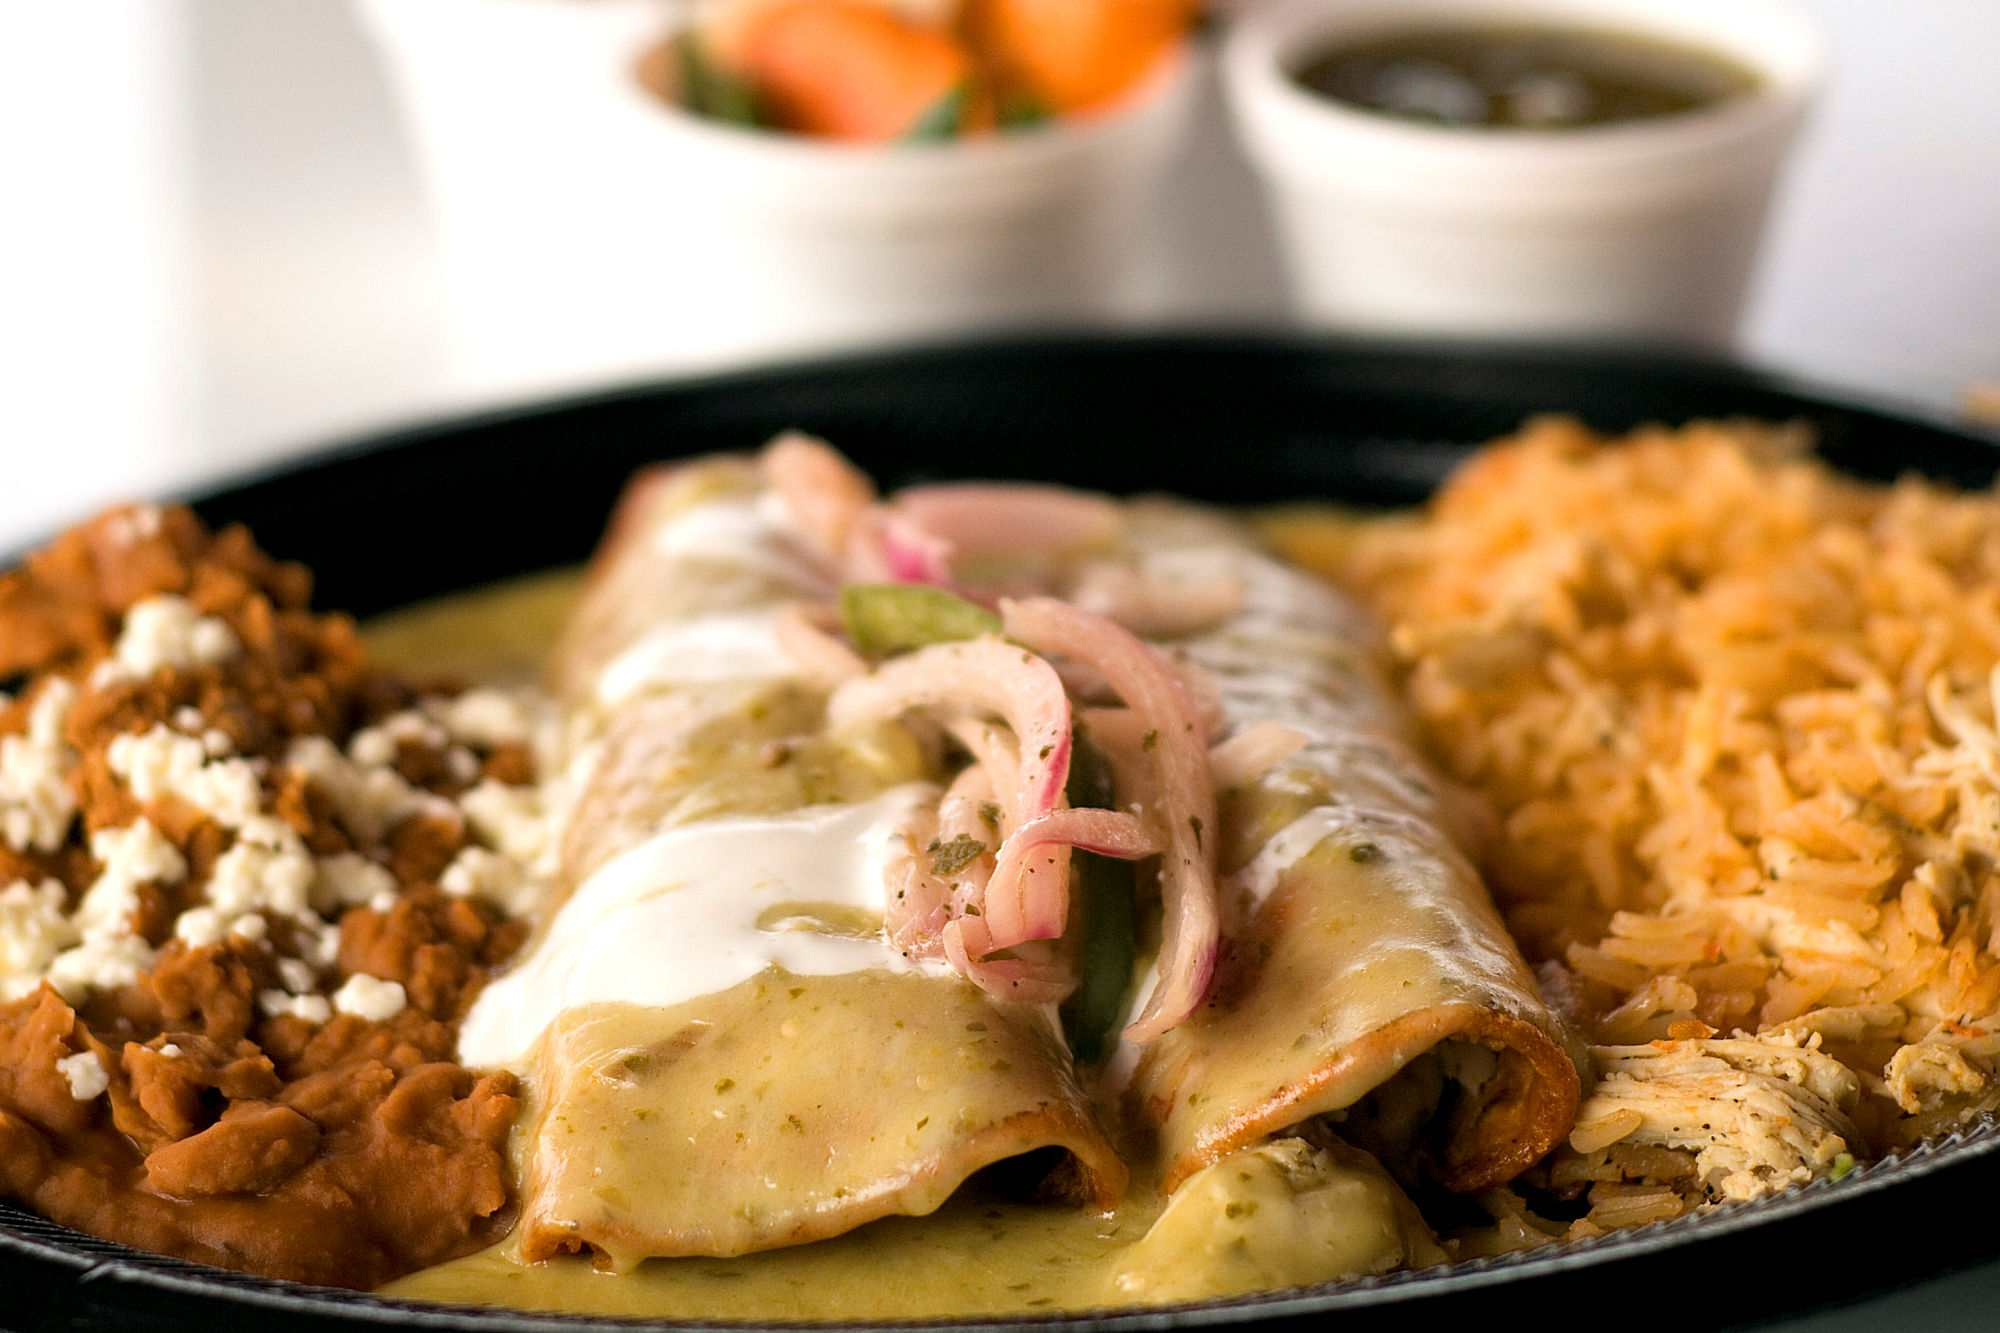 Enchiladas on plate with rice and beans.